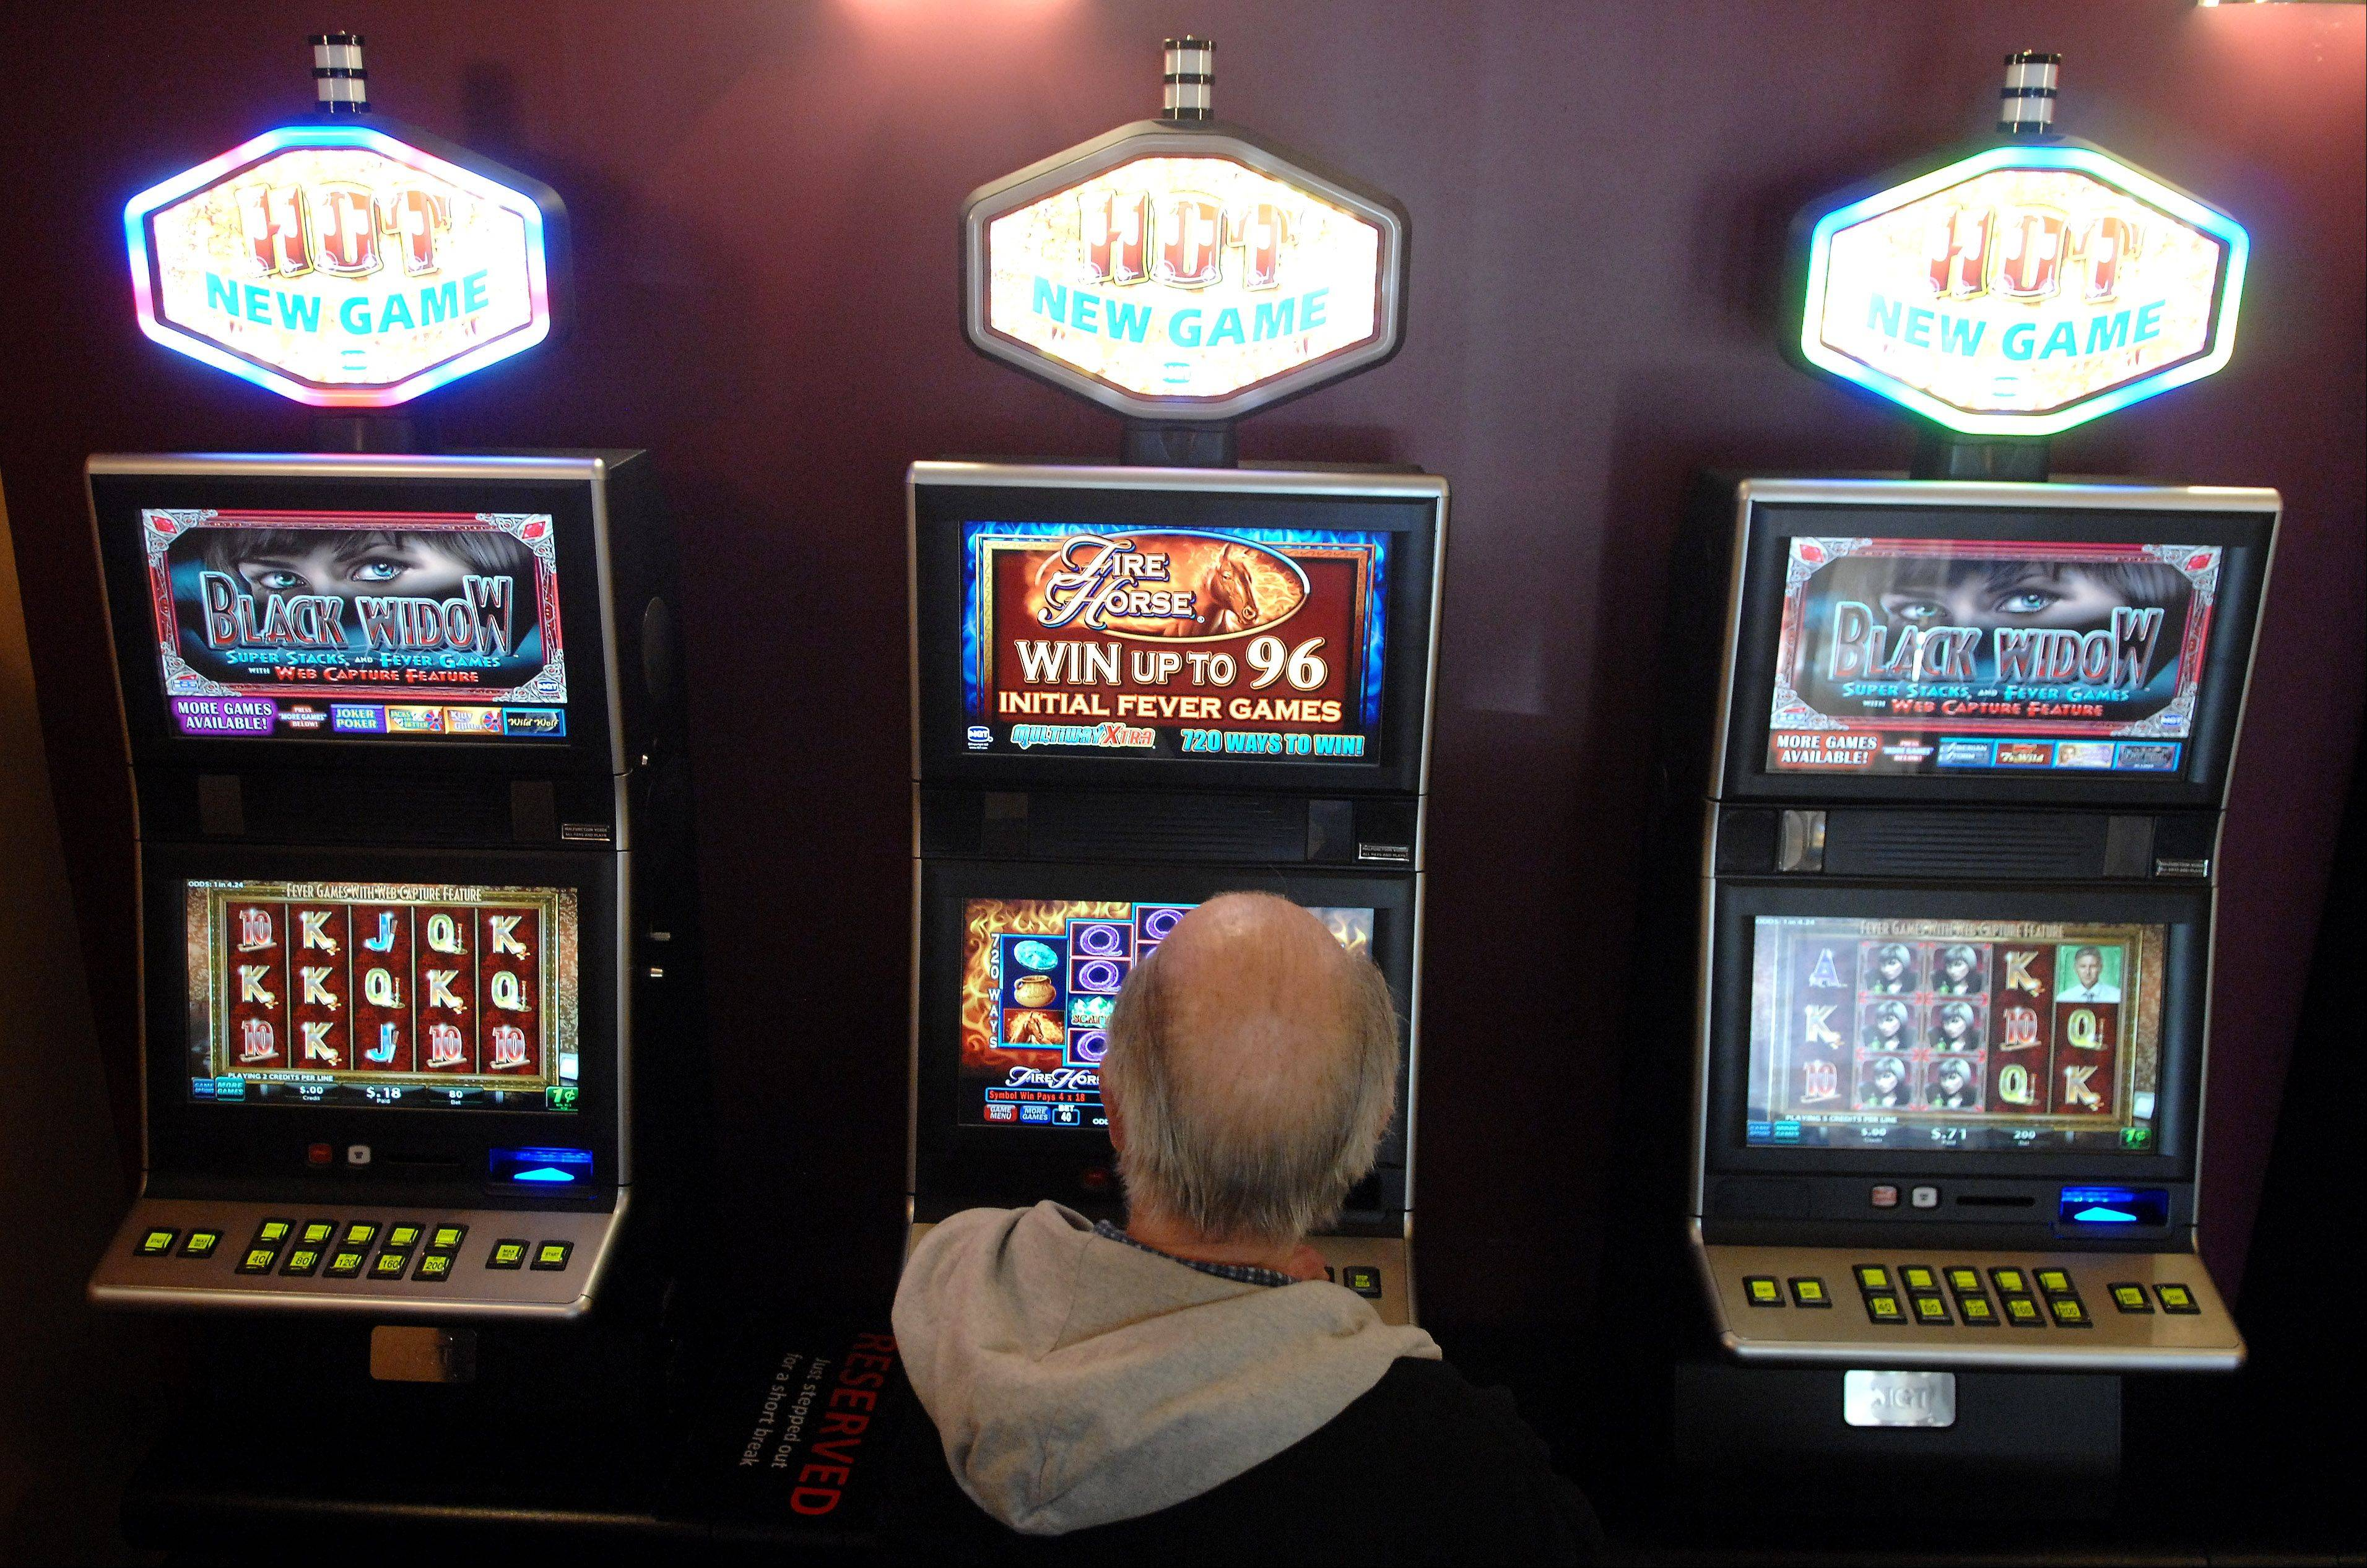 Island Lake Trustee Chuck Cermak wants to allow local bars to install video gambling machines like these. Trustees haven't yet voted on the issue.